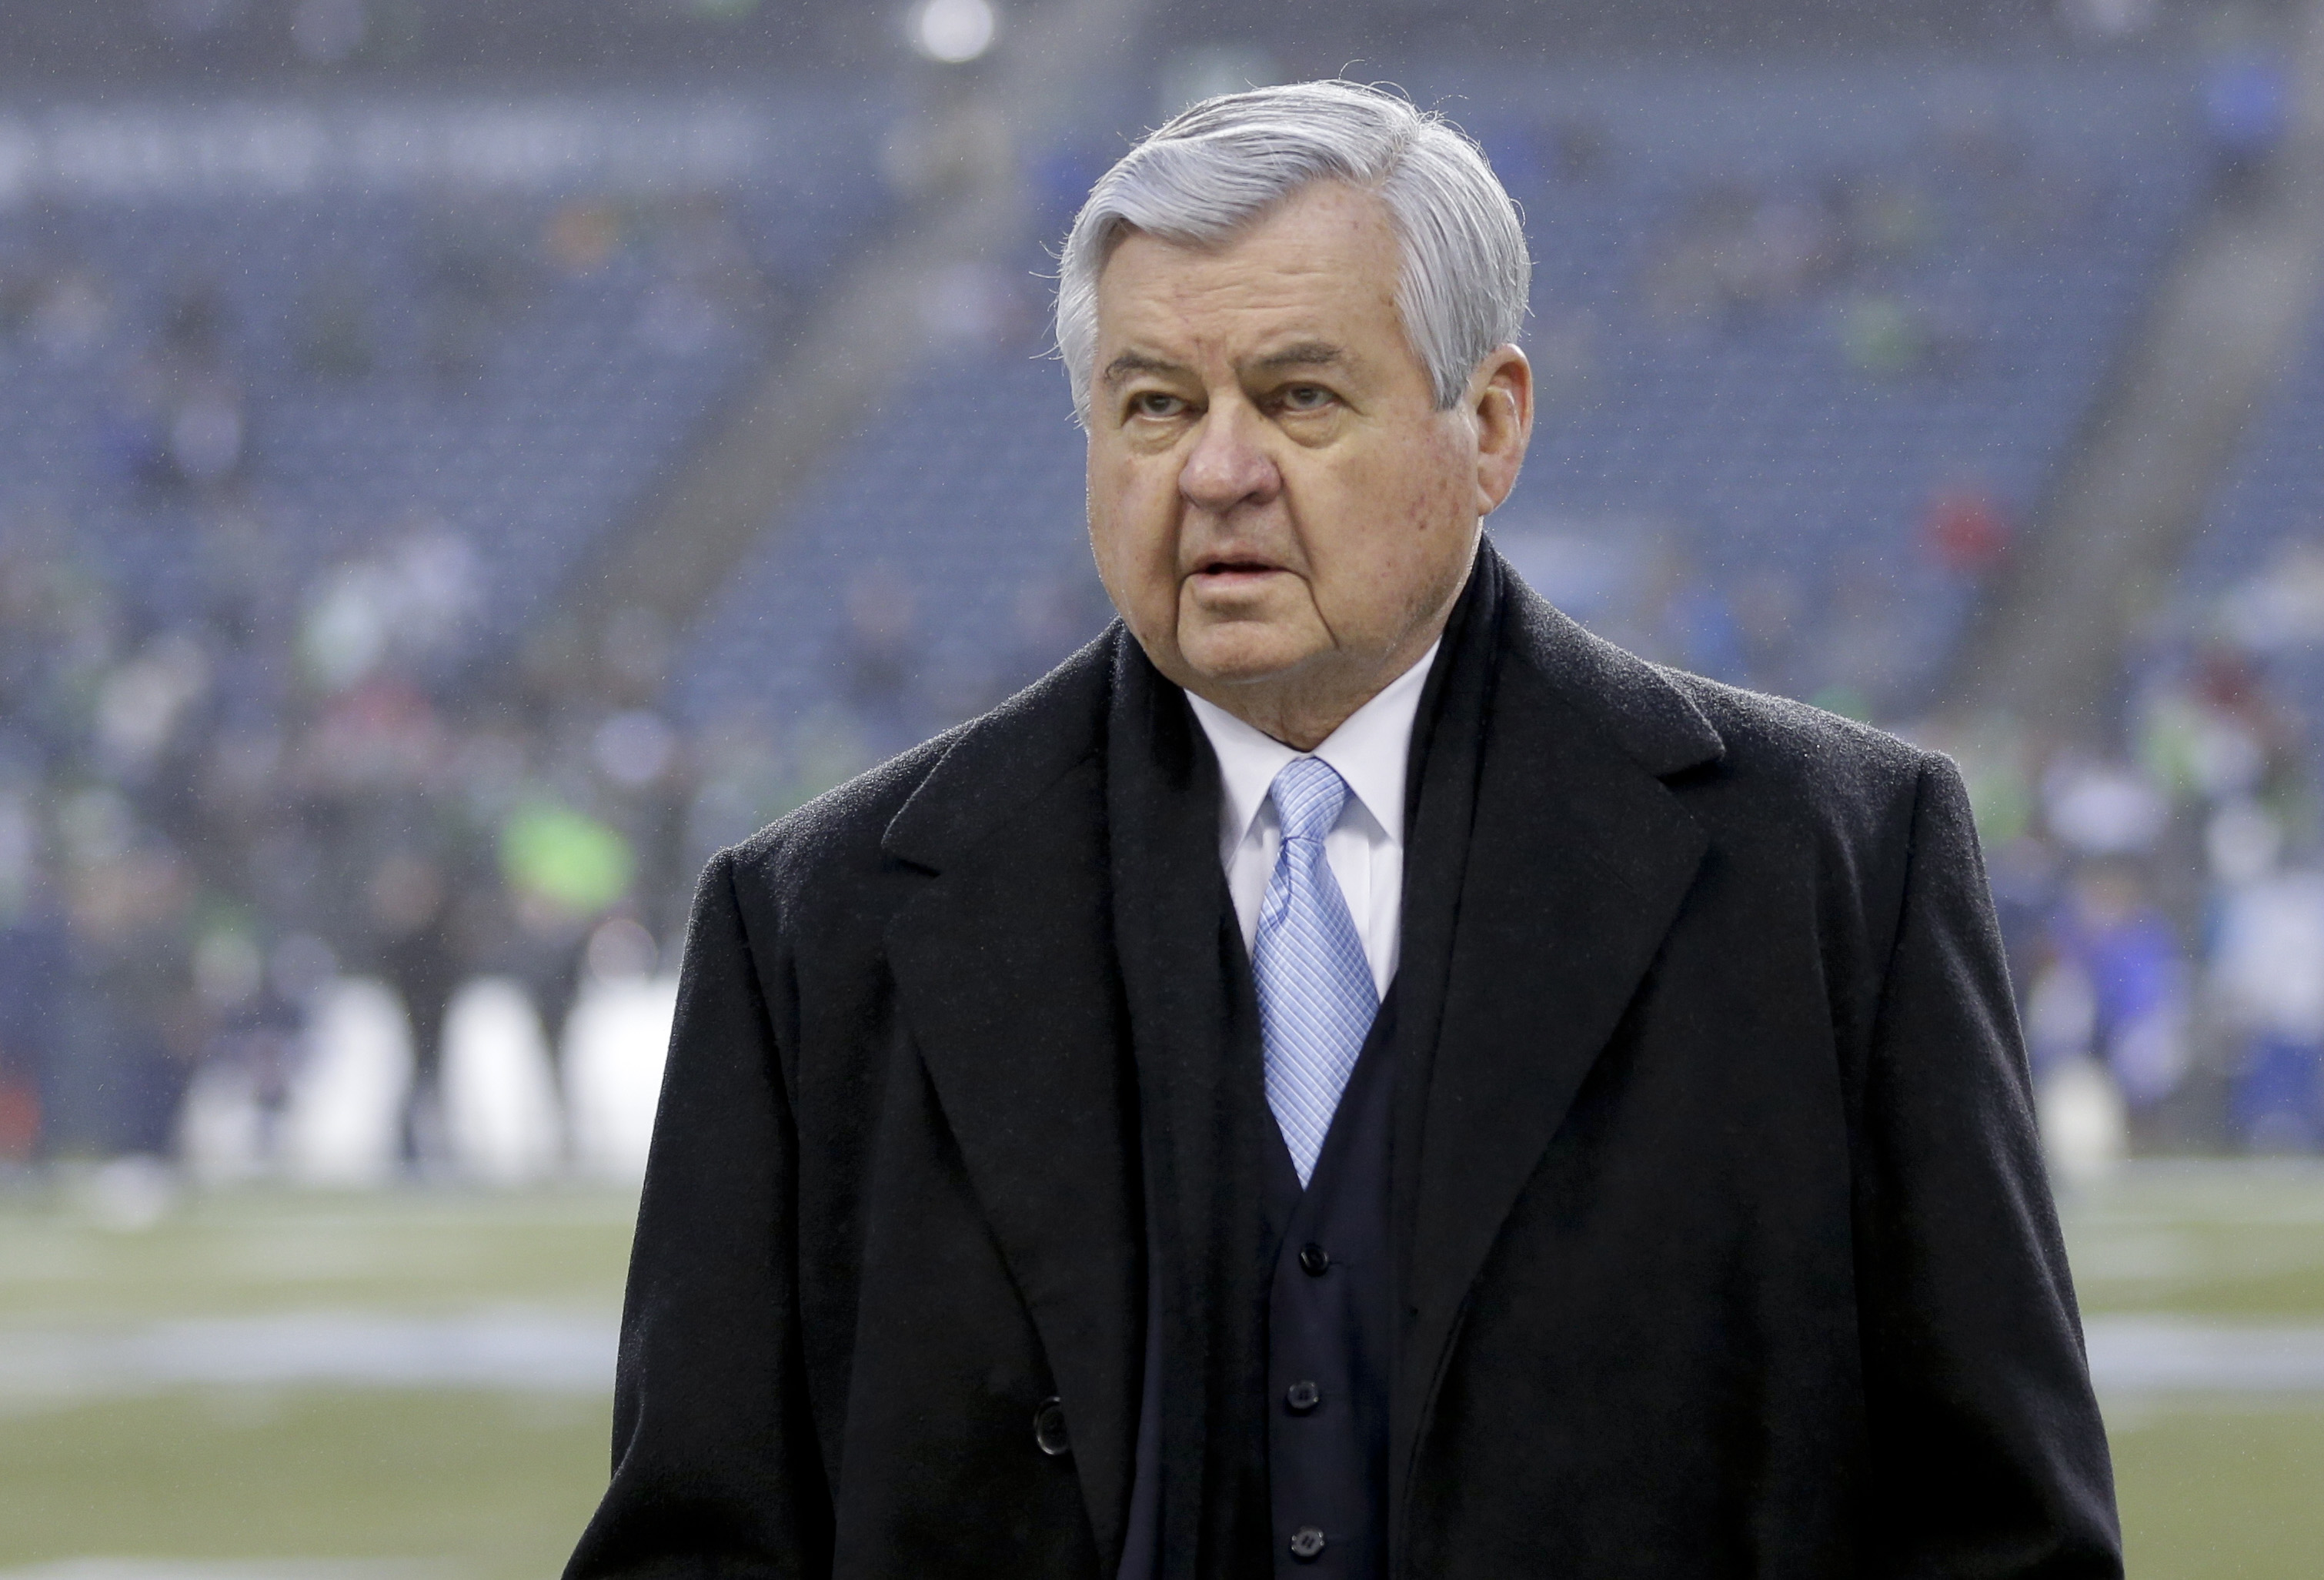 Carolina Panthers owner Jerry Richardson walks on the field before an NFL divisional playoff football game against the Seattle Seahawks in Seattle, Saturday, Jan. 10, 2015. (AP Photo/Ted S. Warren)